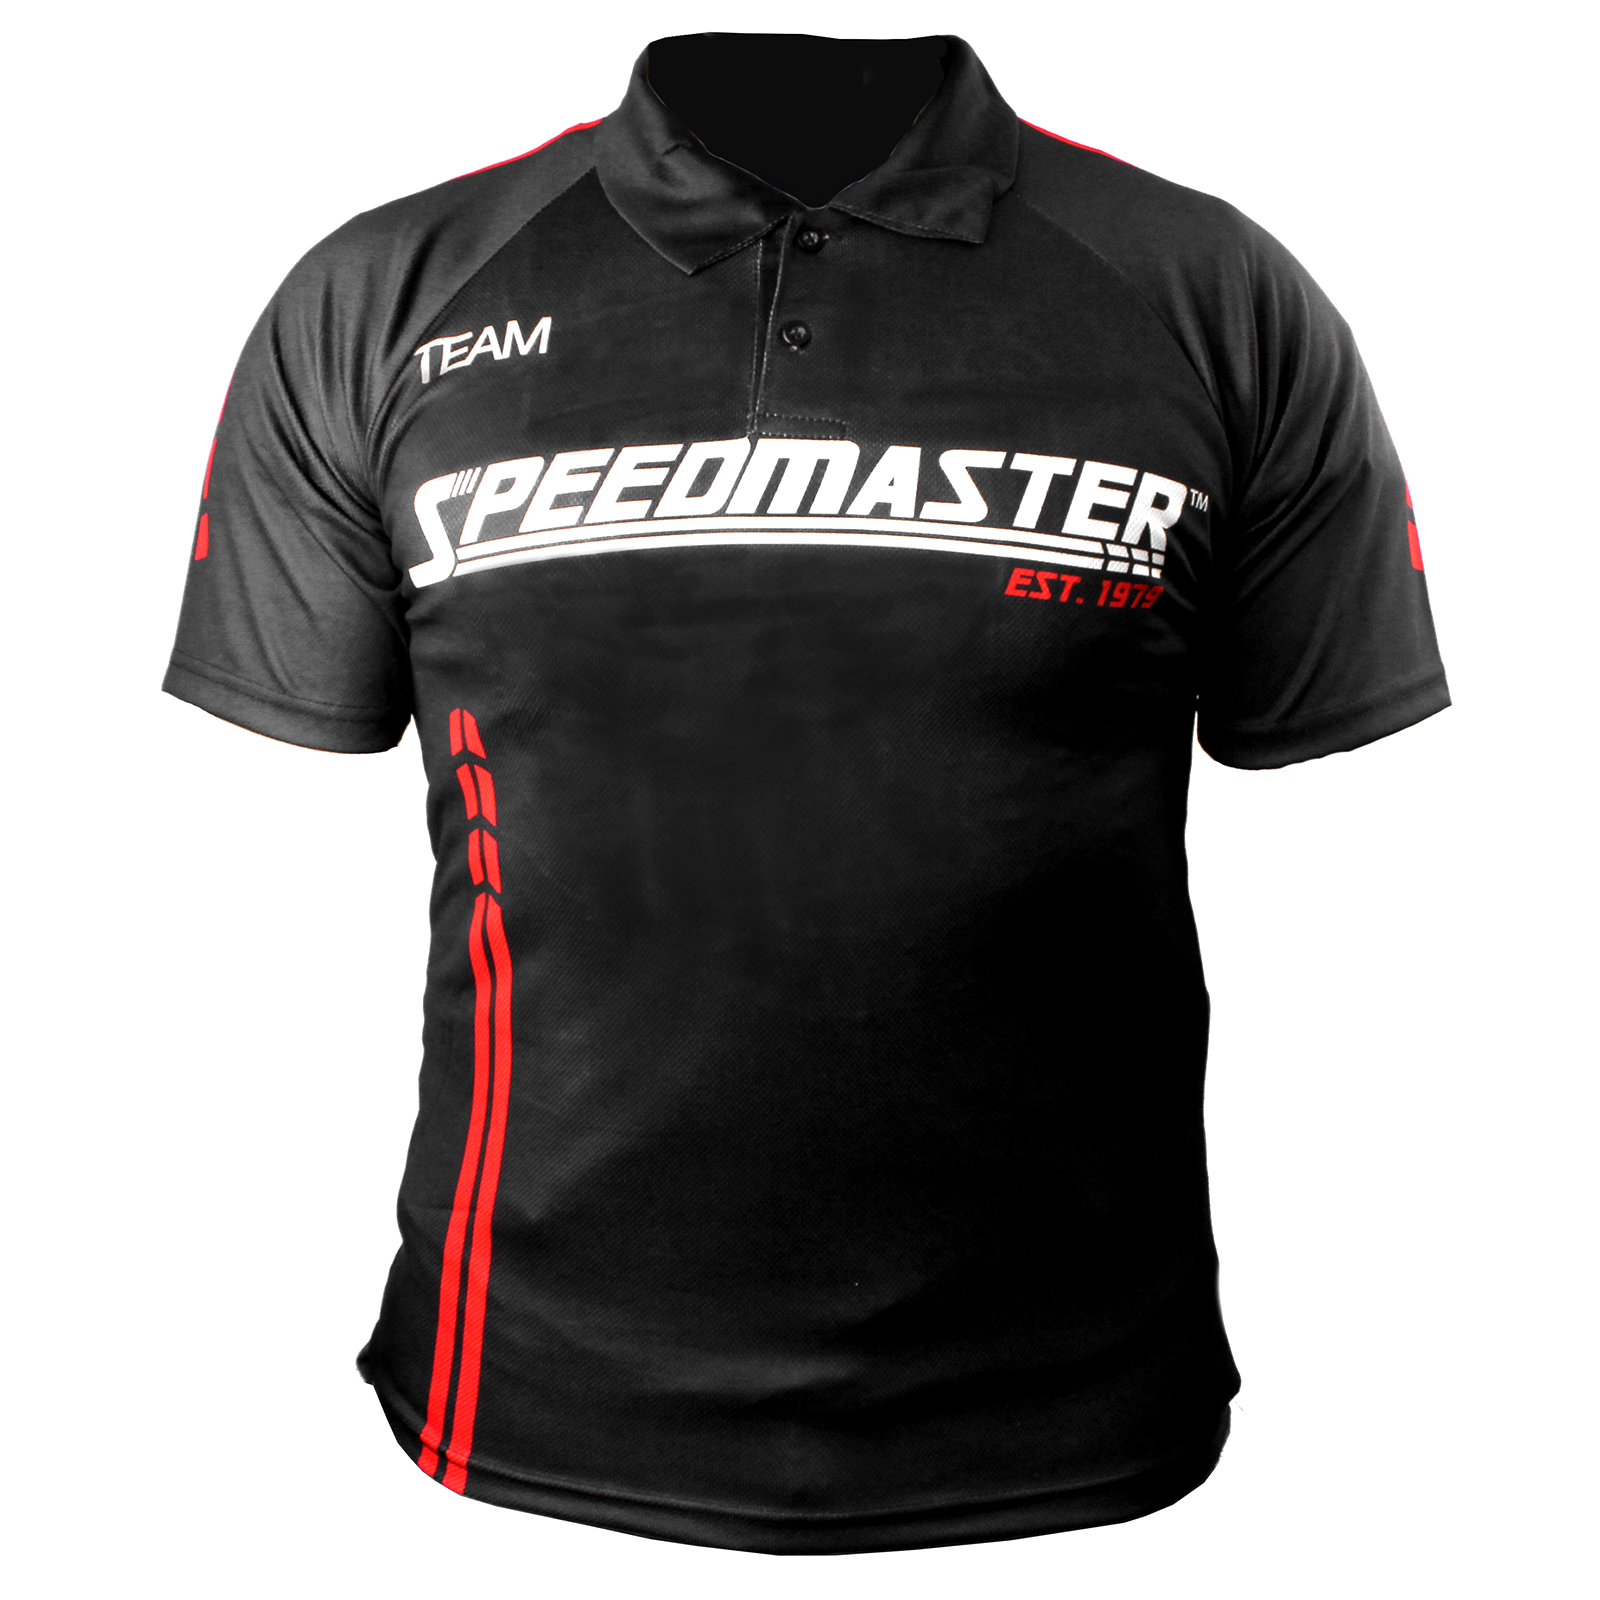 Speedmaster Team Jersey / Polo Shirt - XX Large 2XL